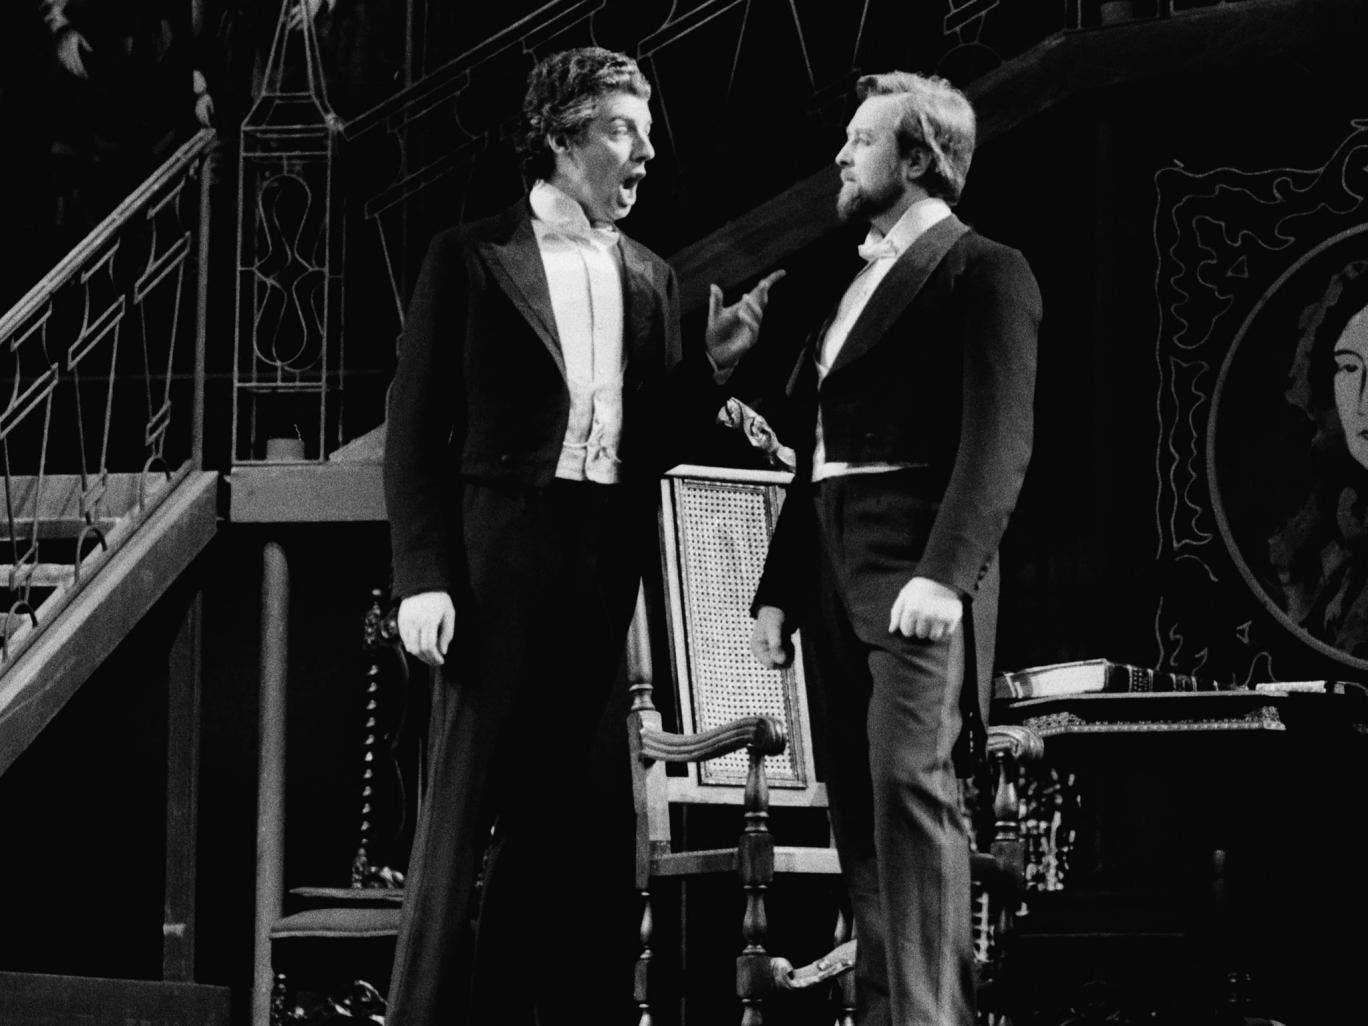 John Shirley-Quirk (left) with Benjamin Luxon in a rehearsal for the stage premiere of Benjamin Britten's opera 'Owen Wingrave' at the Royal Opera House in 1973